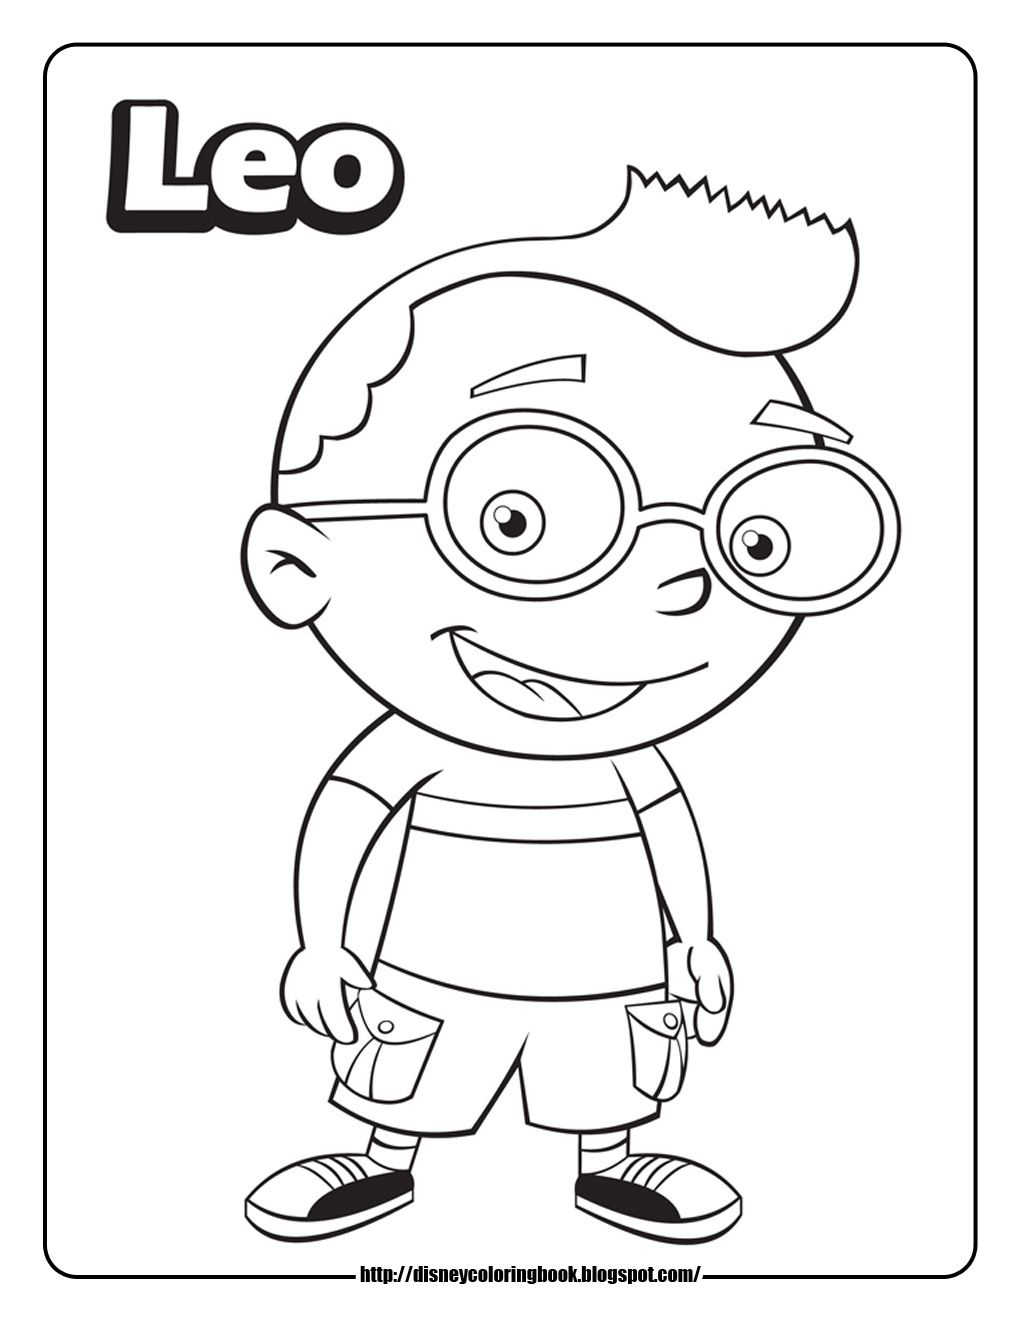 little einsteins coloring pages leo Baby Coleman Pinterest